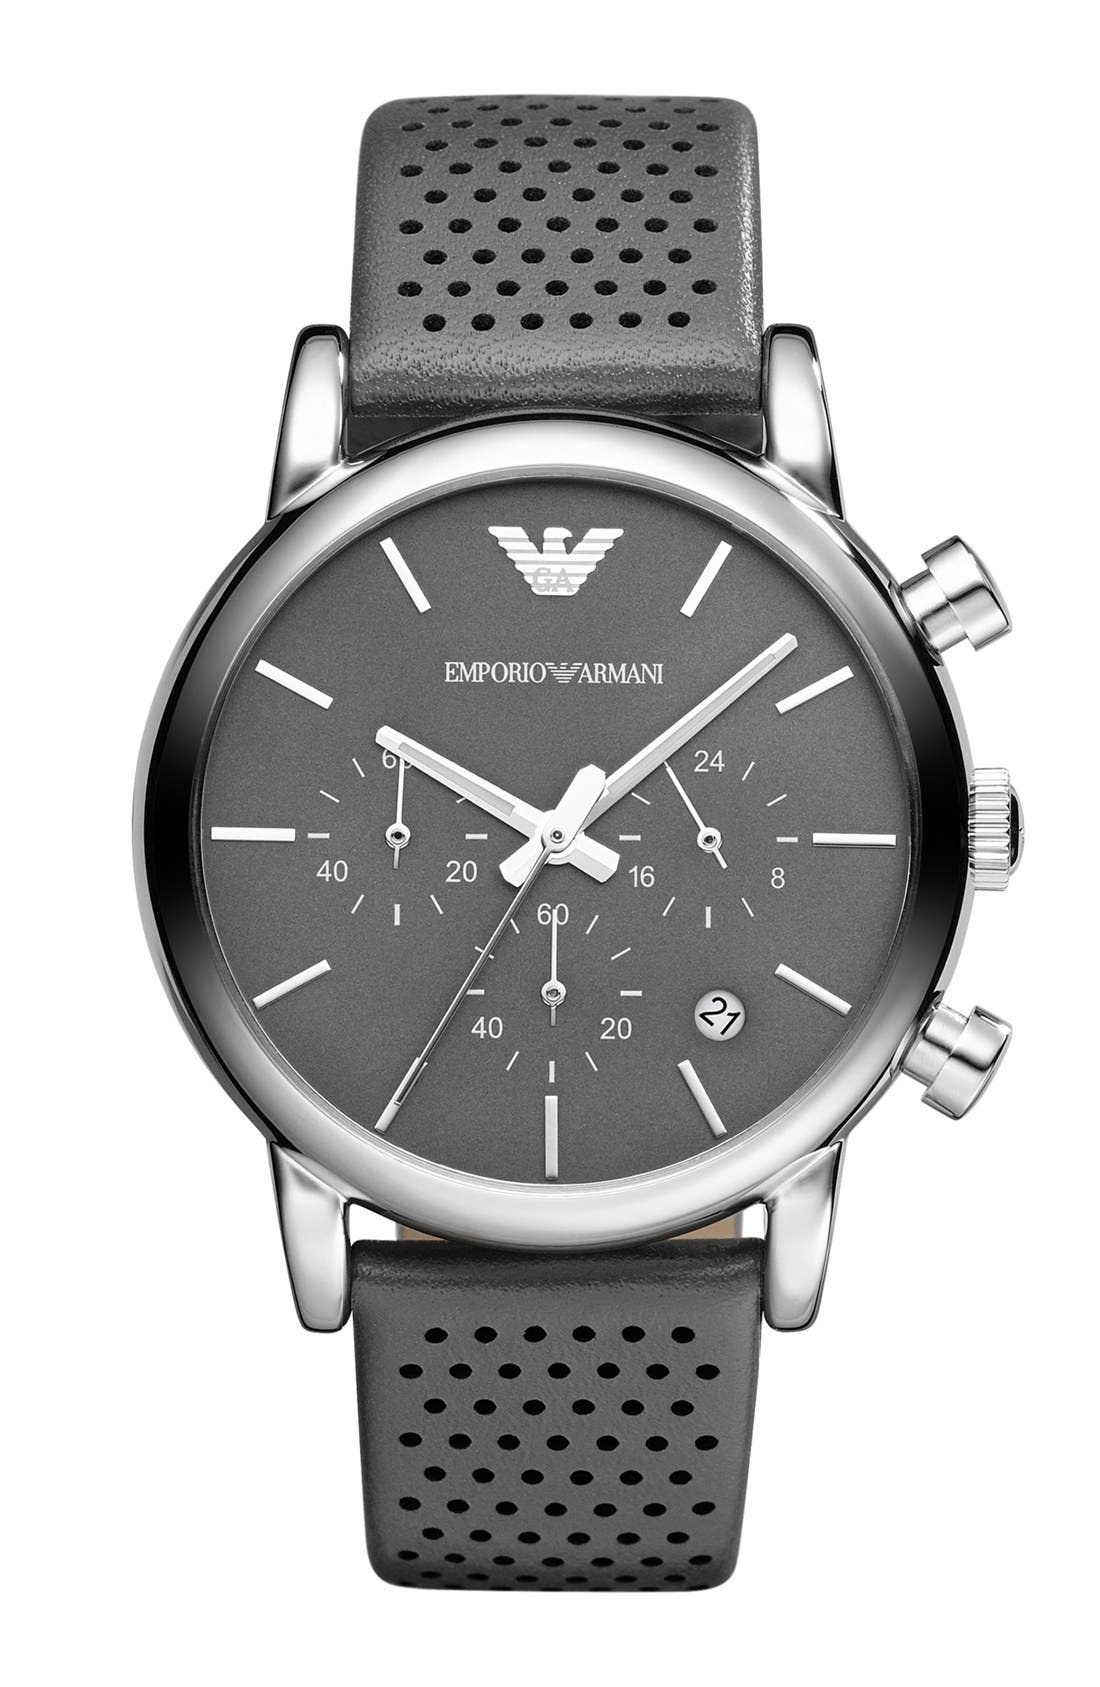 Main Image - Emporio Armani Perforated Leather Strap Watch, 41mm